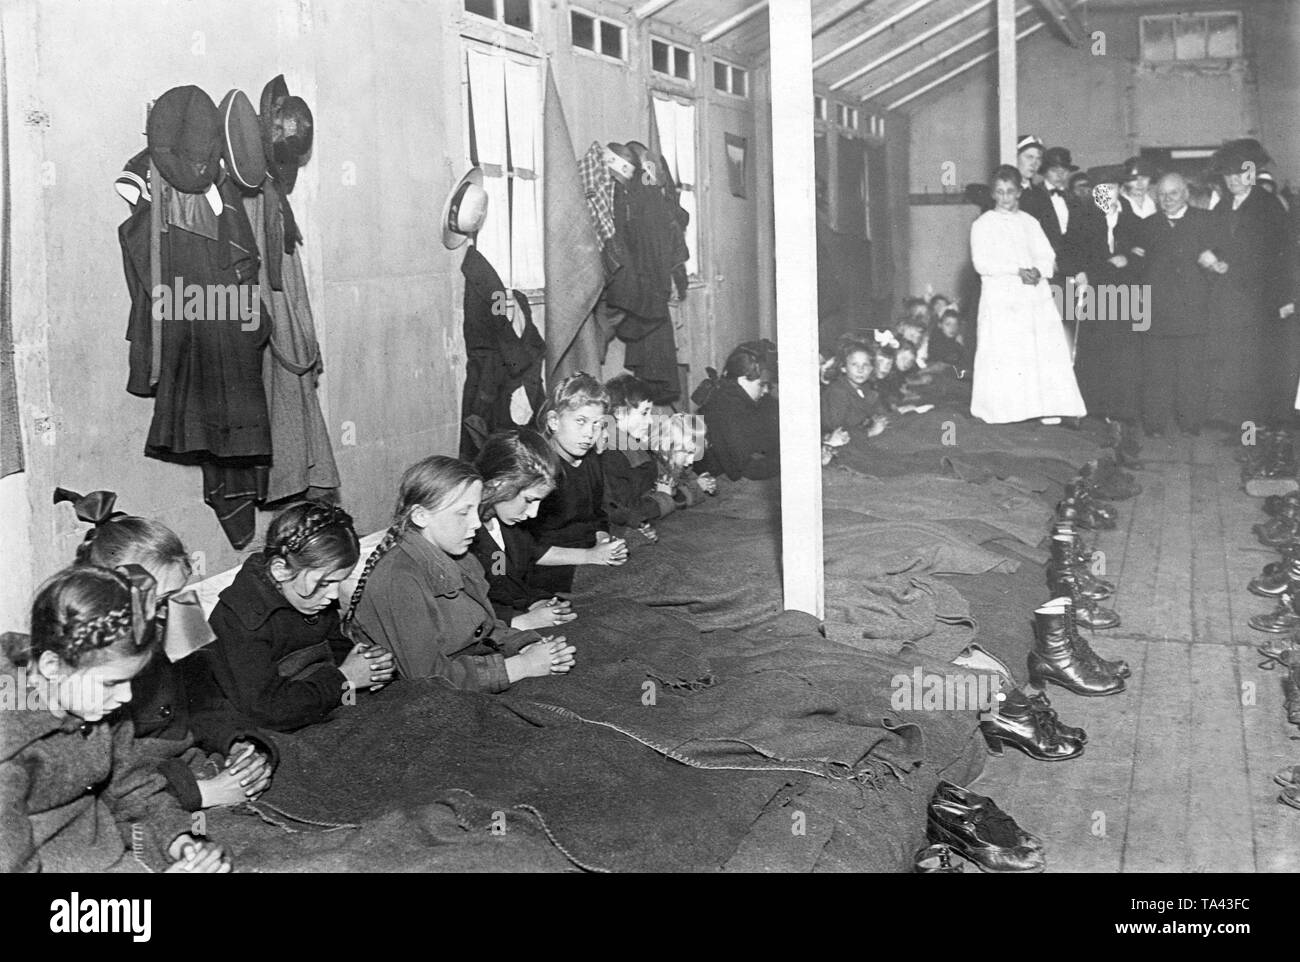 Children of the workers, who were striking against the French, were taken to lodgings, such as this one in an unoccupied territory of the Reich. Here, children are praying (Undated photo). - Stock Image